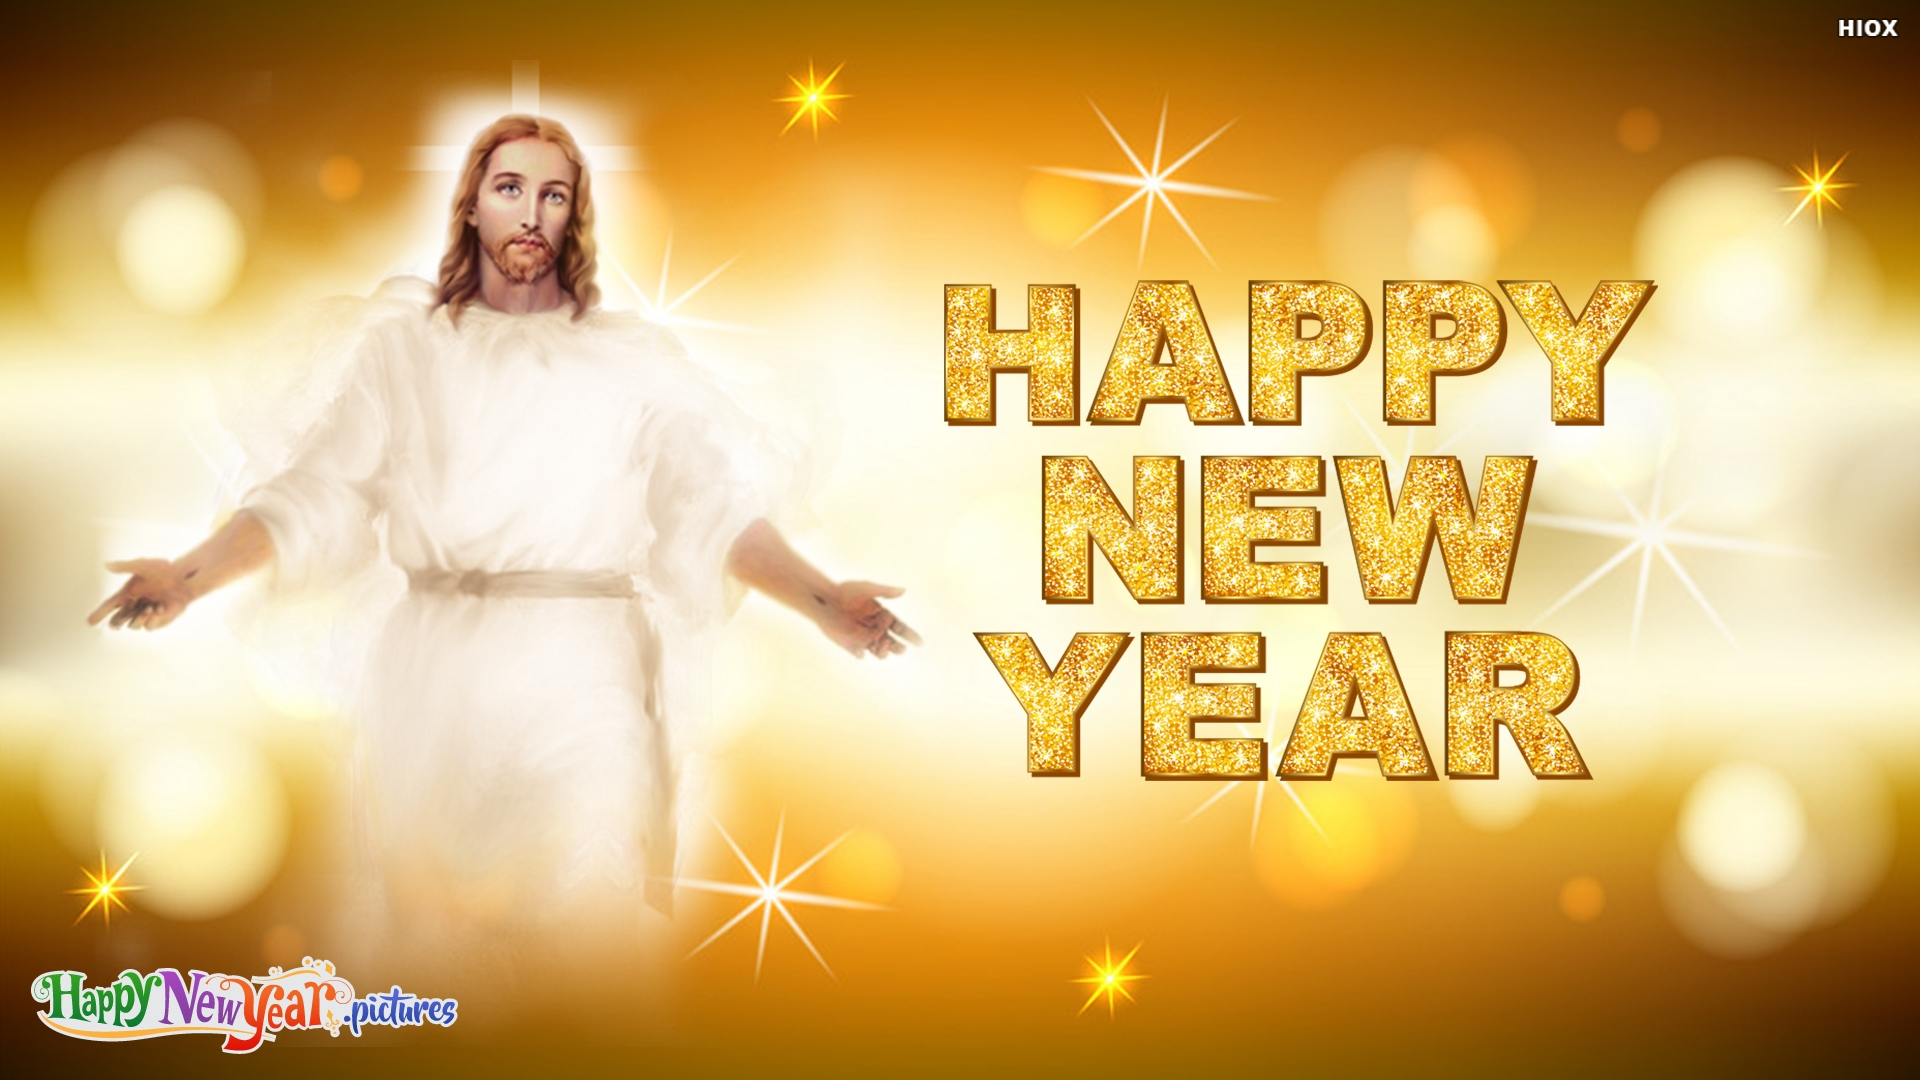 Happy New Year With Jesus Blessings